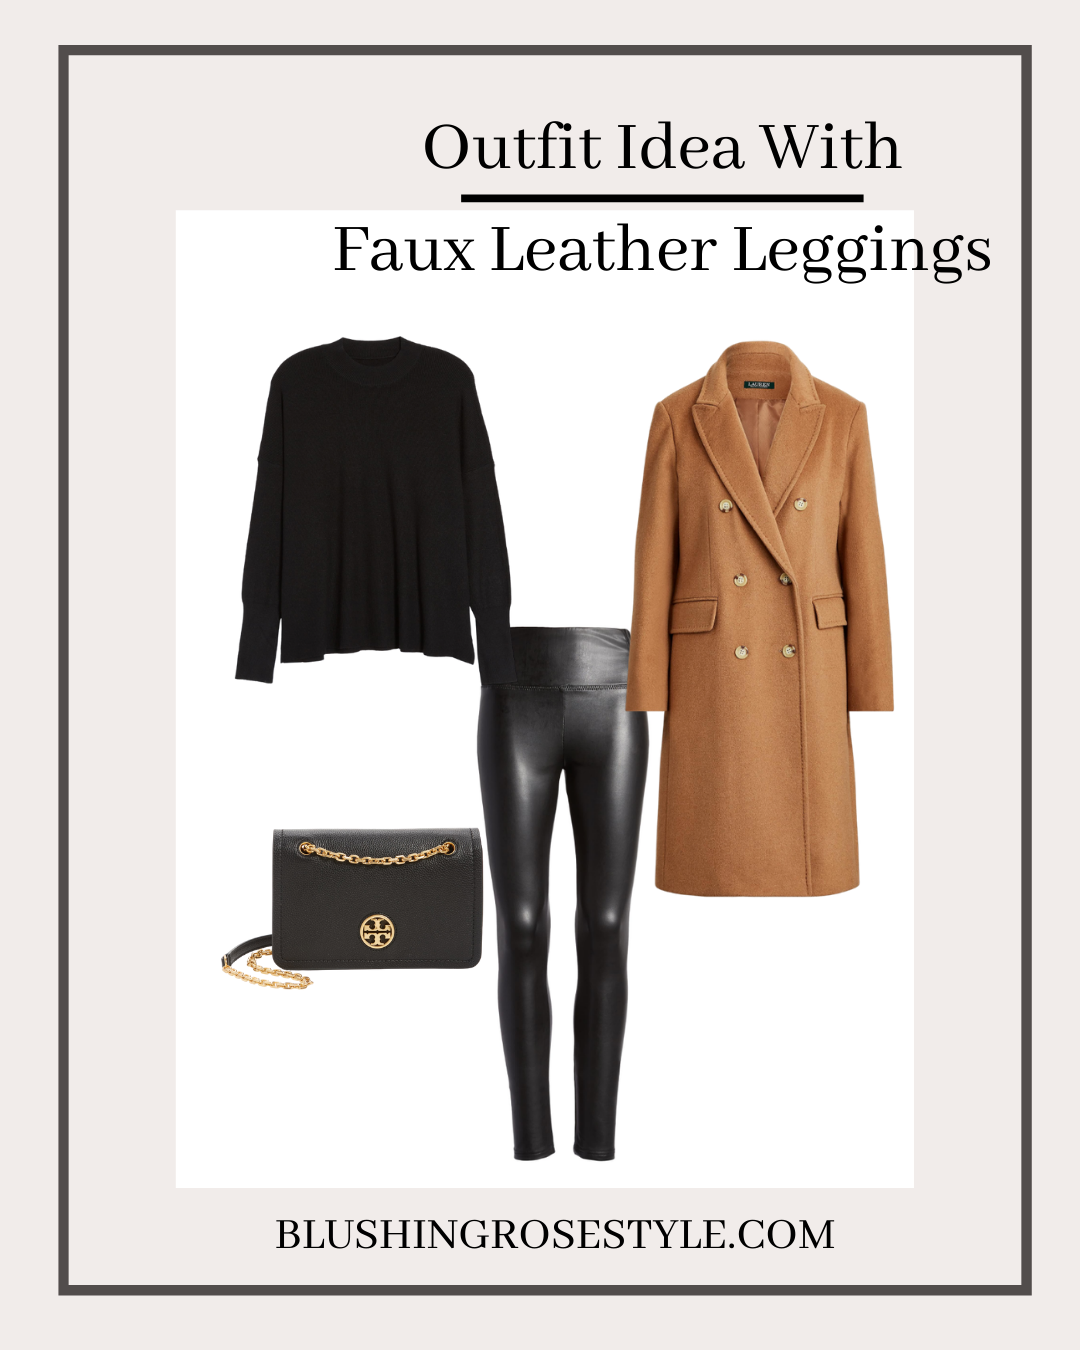 outfit idea with faux leather leggings